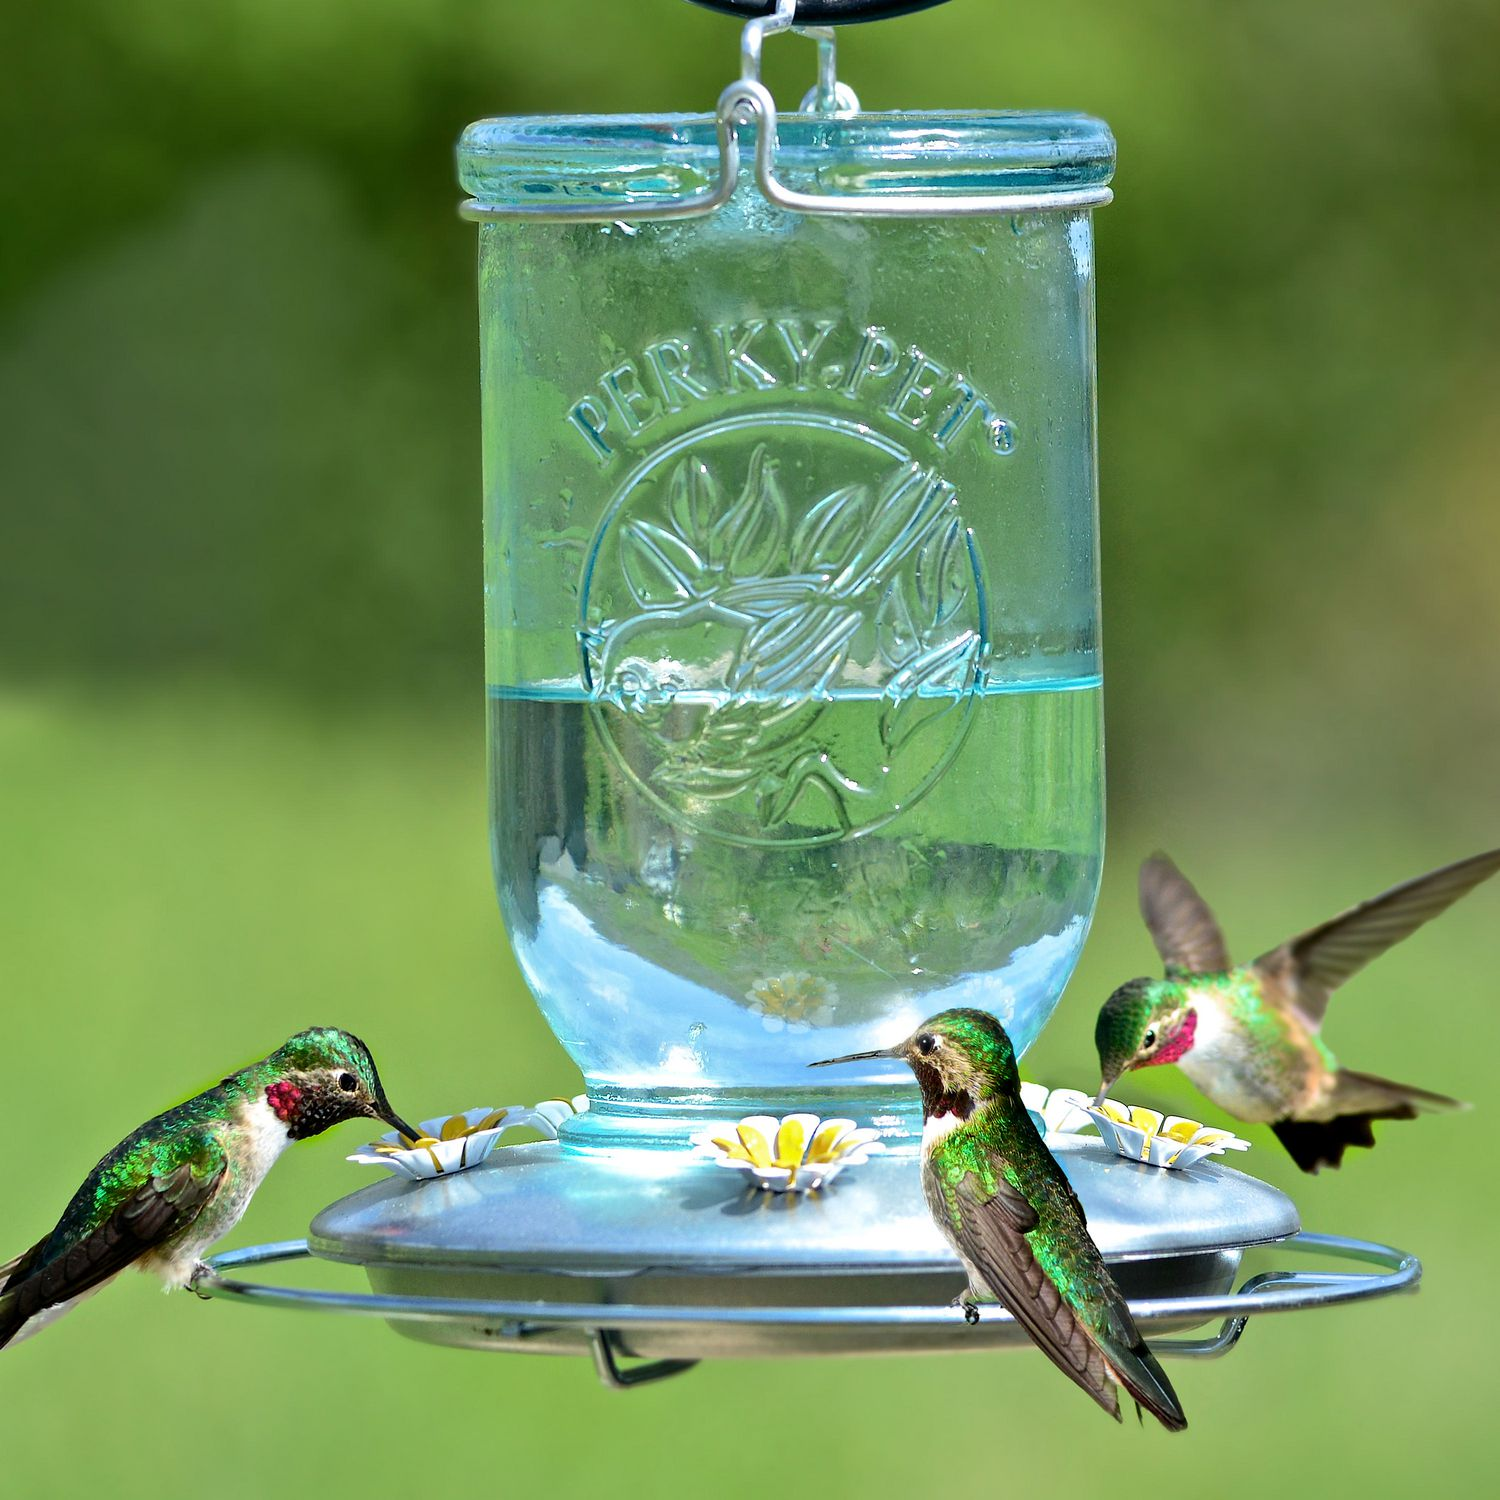 feeder bf perky hummingbird com s glass model us perkypet top oz fill finest pet humingbird perkys